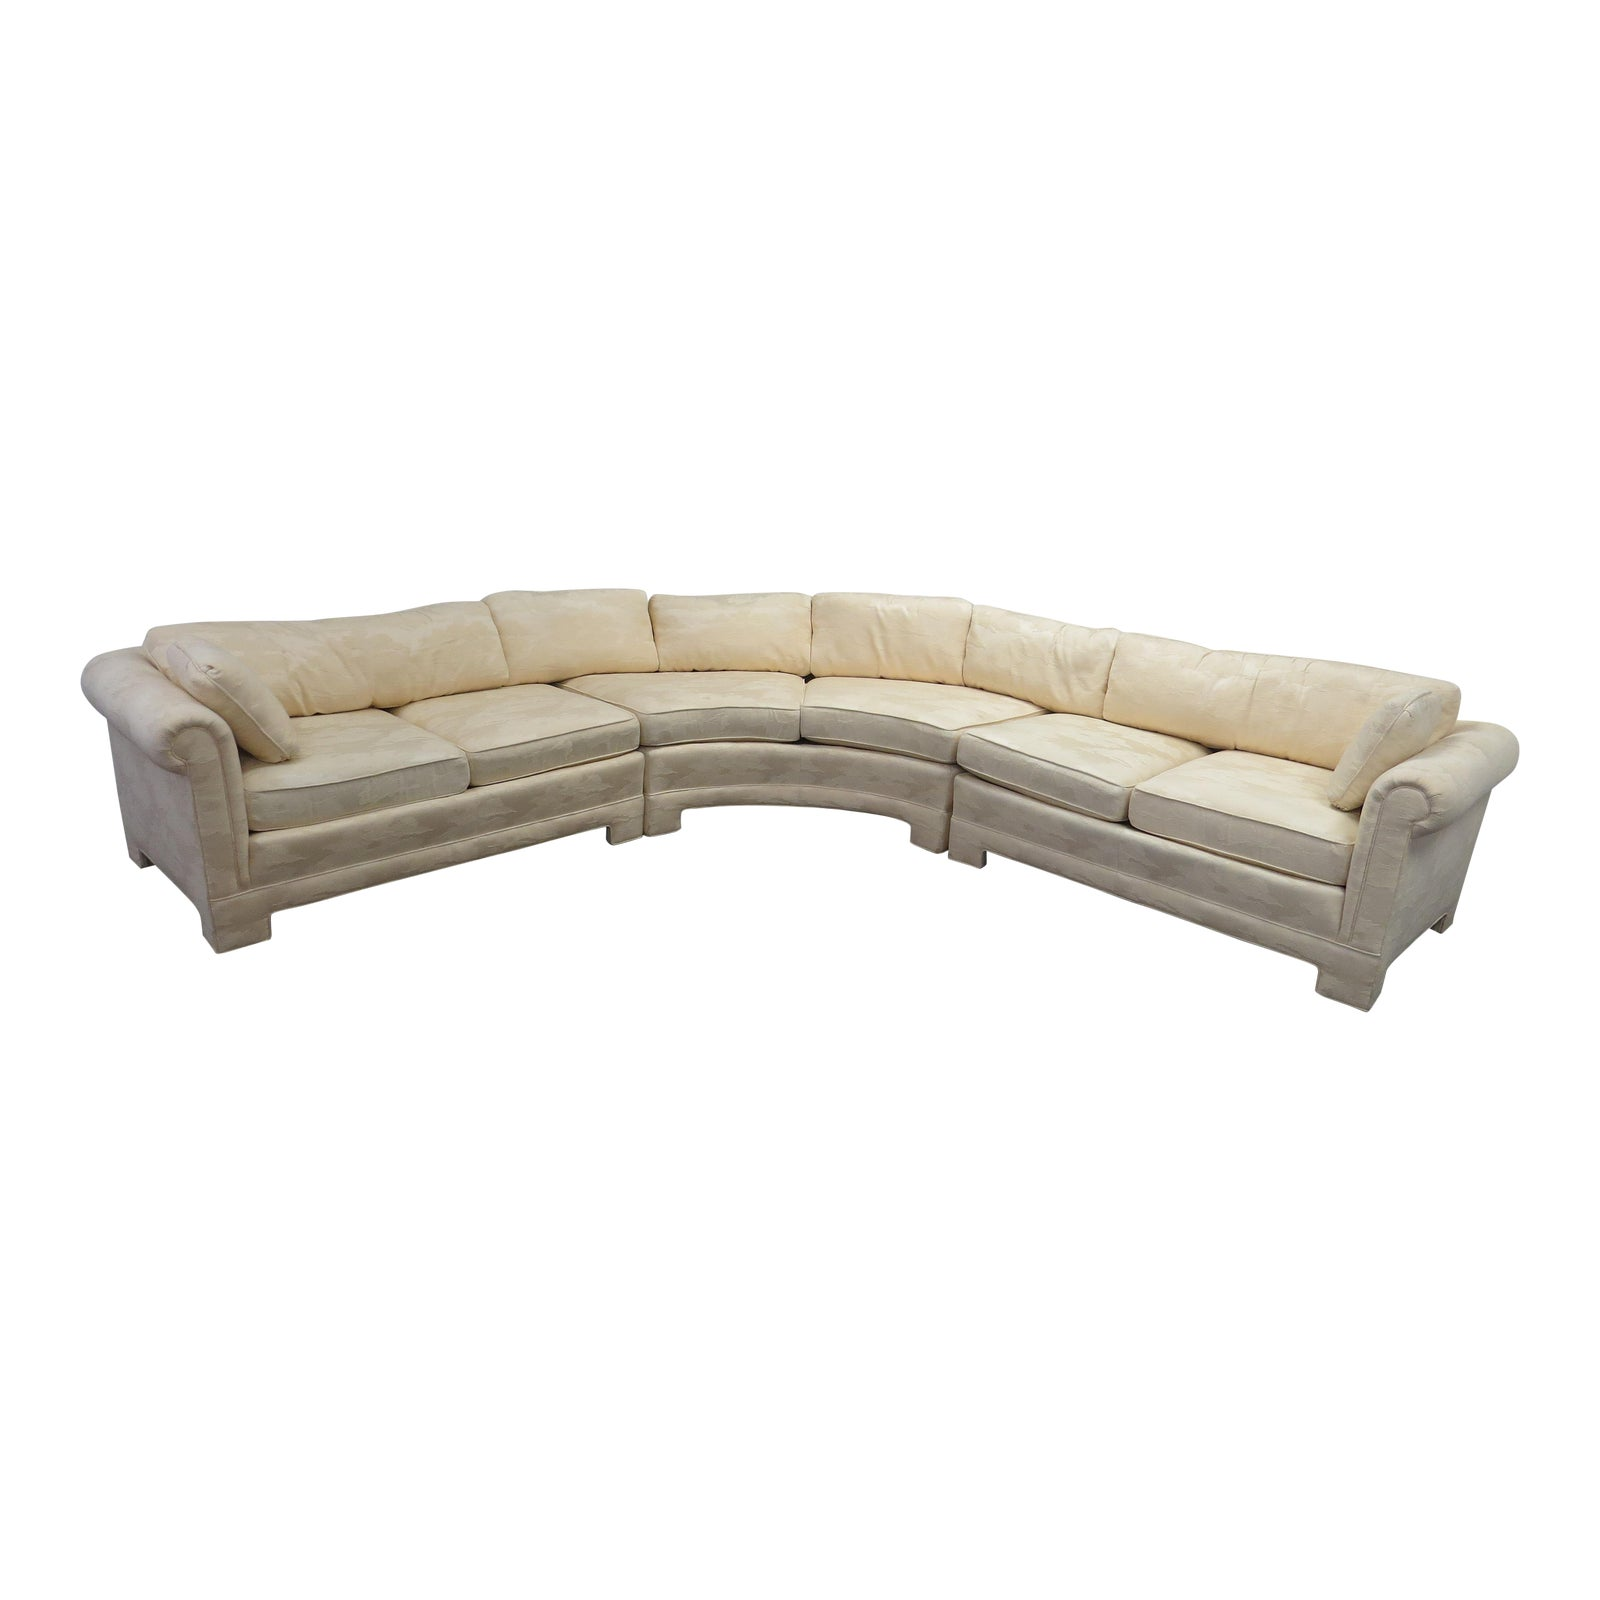 Late 20th Century Vintage Century Furniture L-Shaped Sectional Sofa